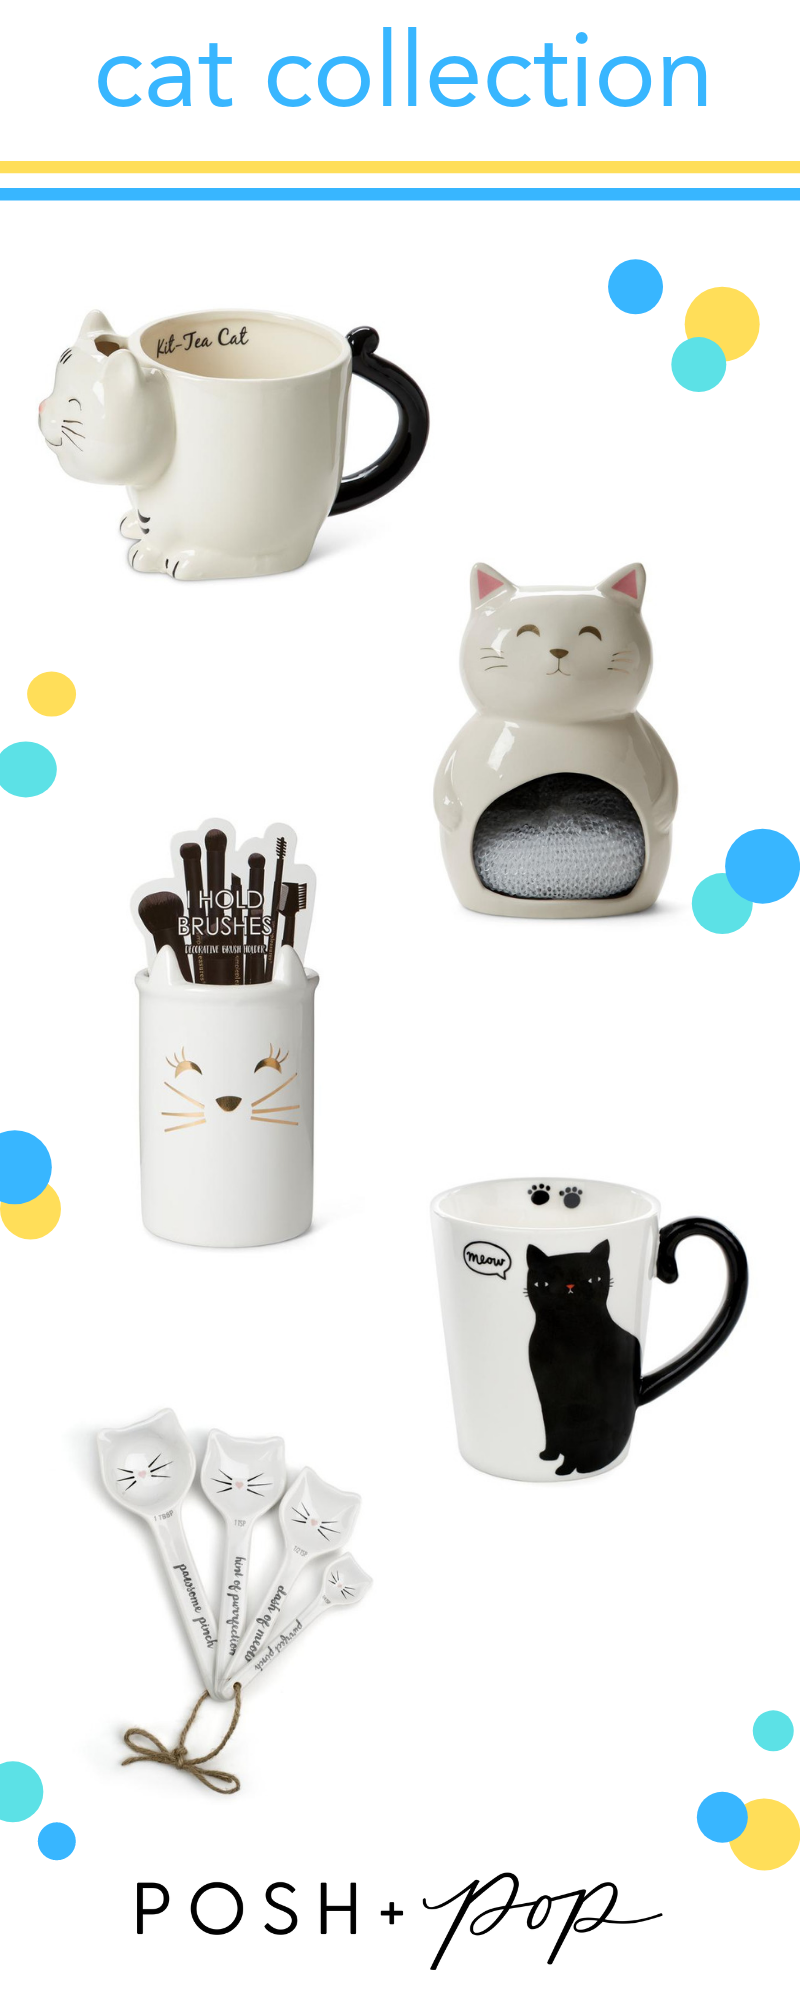 Cat Themed Gifts From Posh Pop Gifts Giftideas Giftsforgirls Catgifts Cat Themed Gifts Cat Lady Gift Cat Lover Gifts